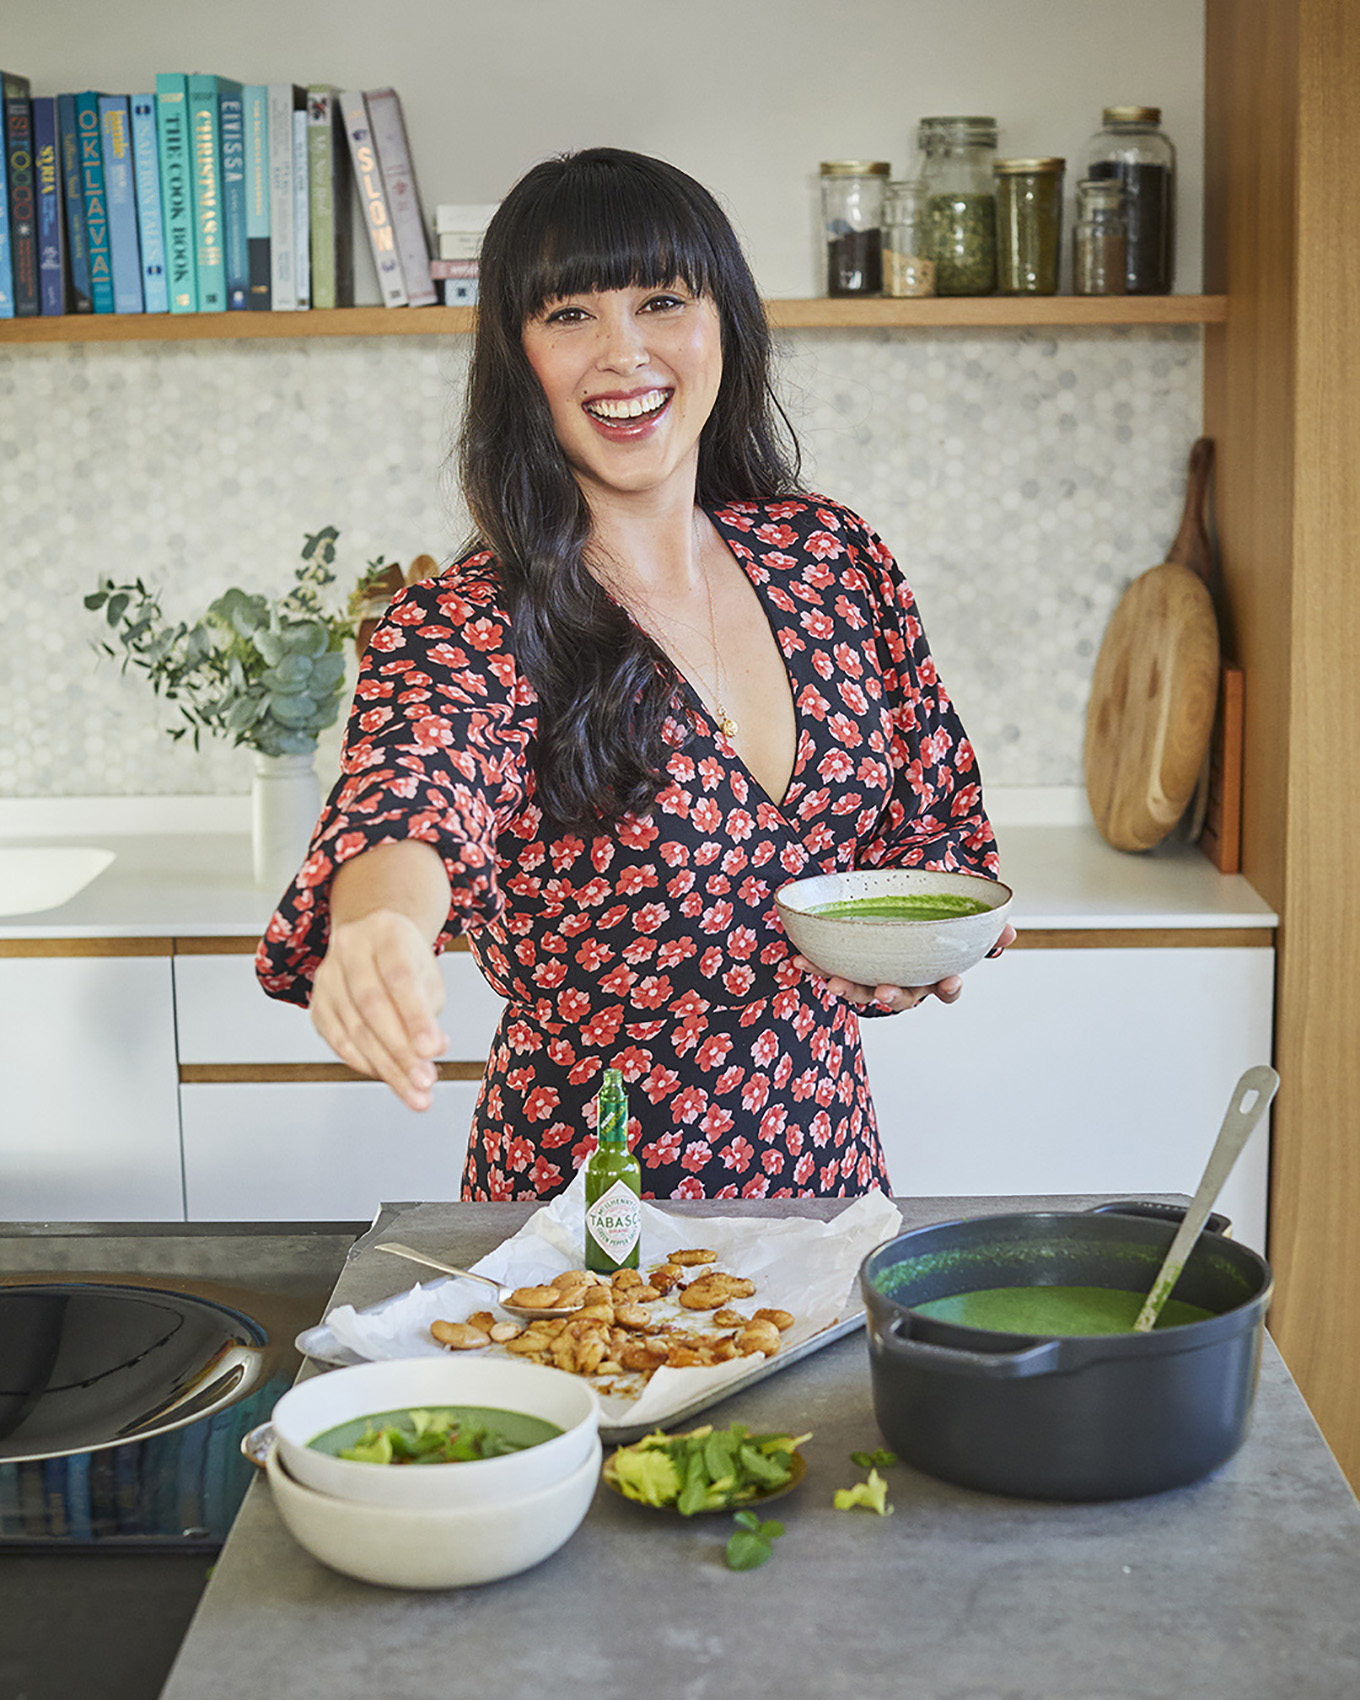 SteveRyan_Photographer_Portraits_People_MelissaHemsley_London_13